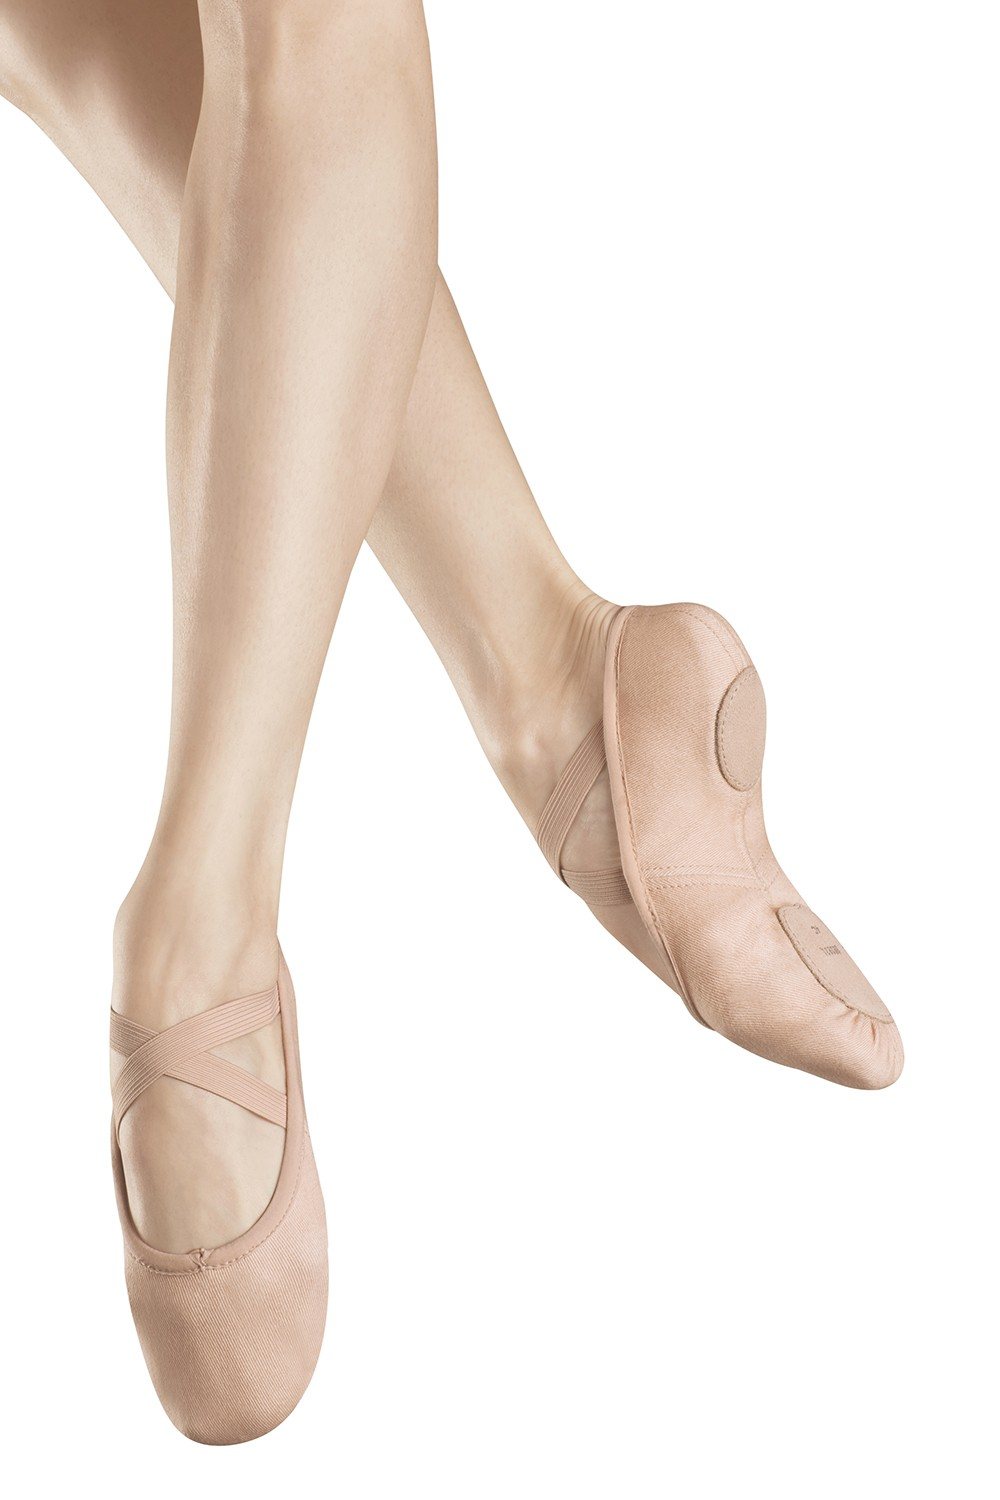 Zenith - Girls Girl's Ballet Shoes